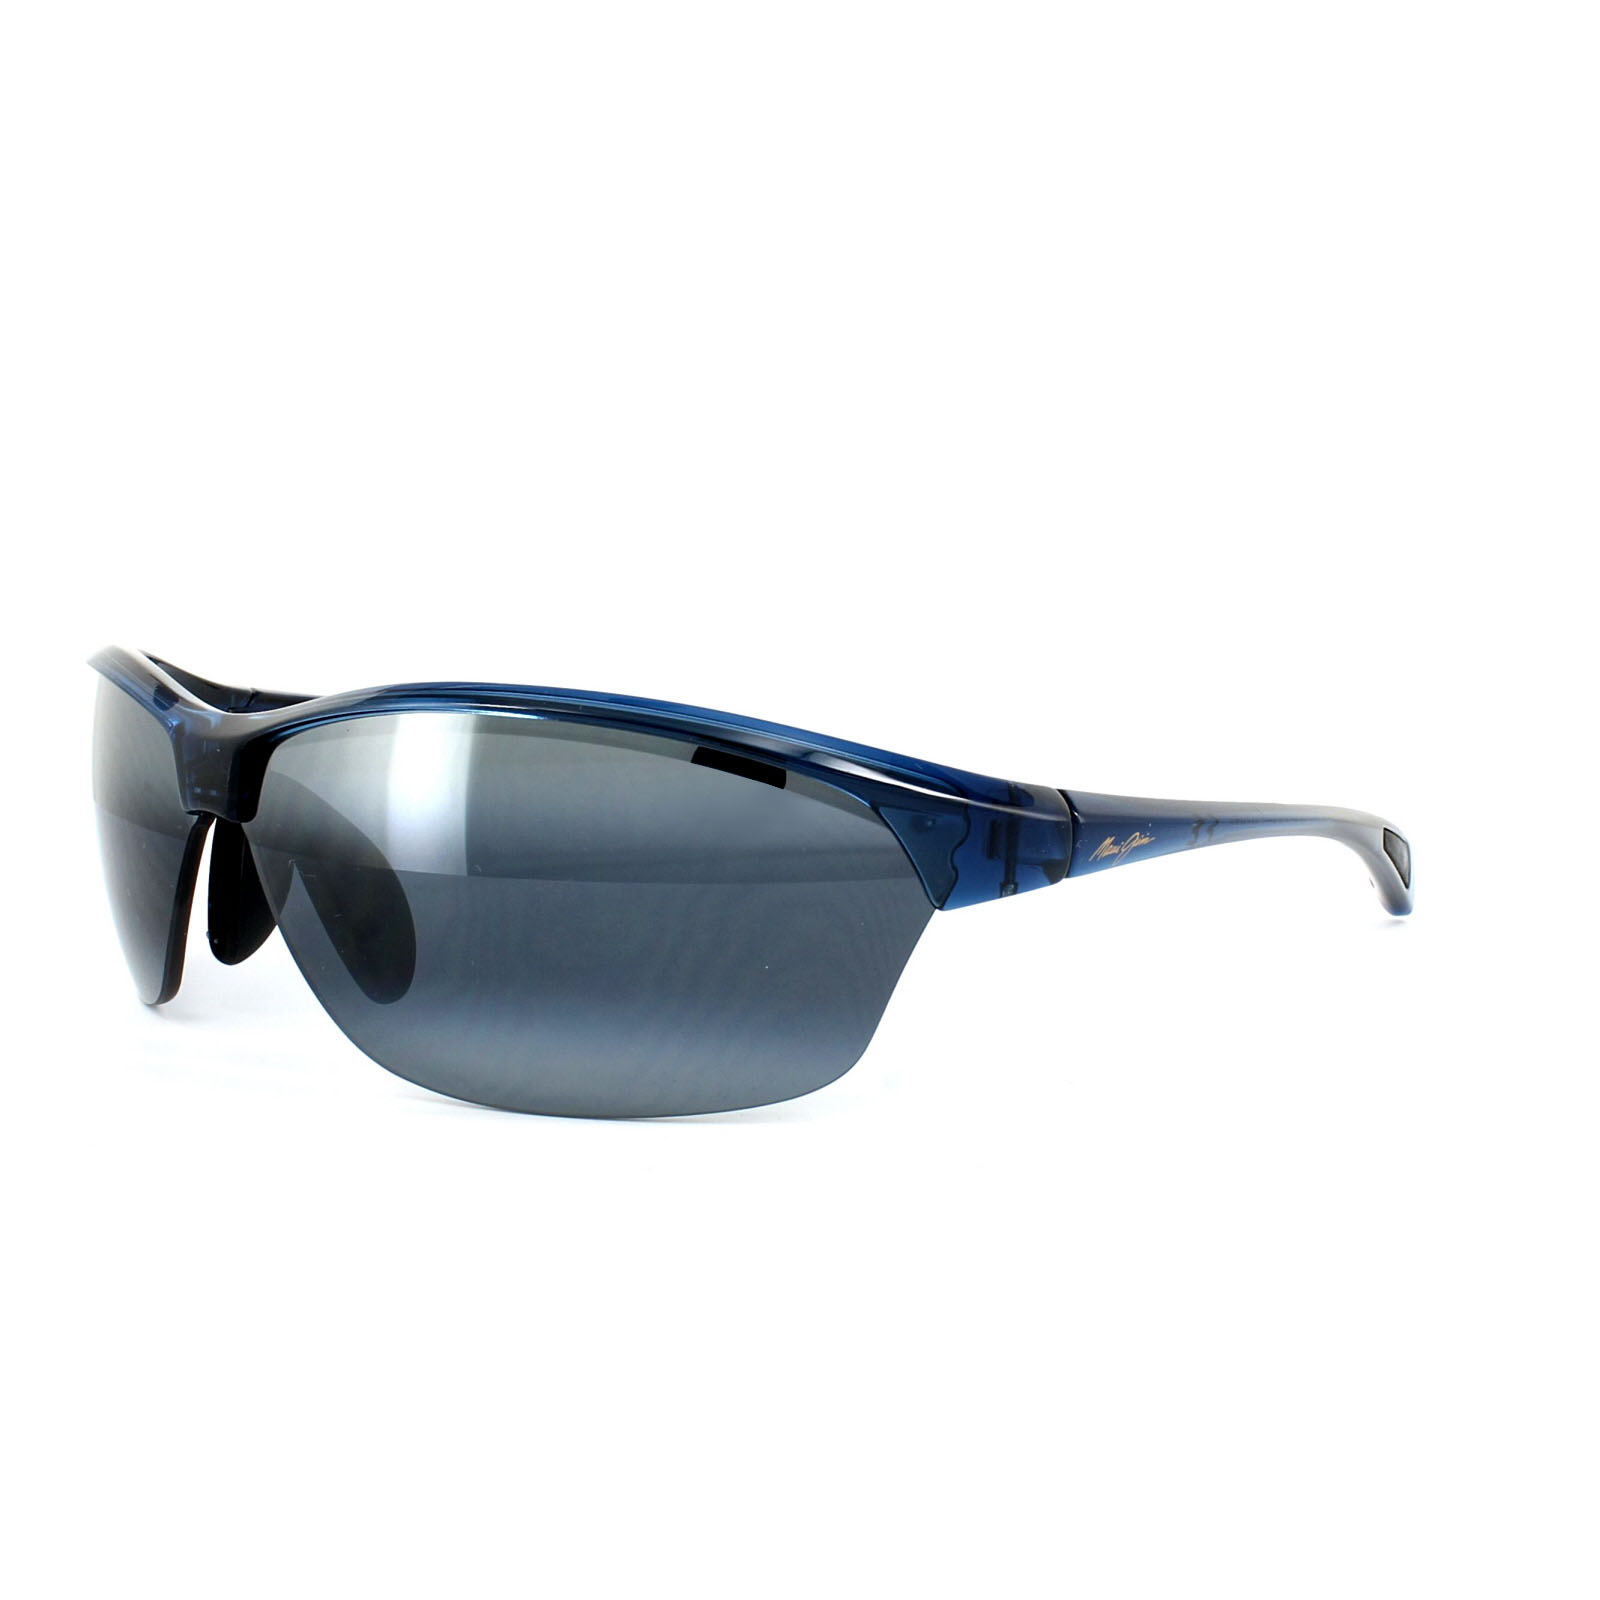 Maui Jim Maui Jim HOT SANDS Blau (426-03) fUkAcQH